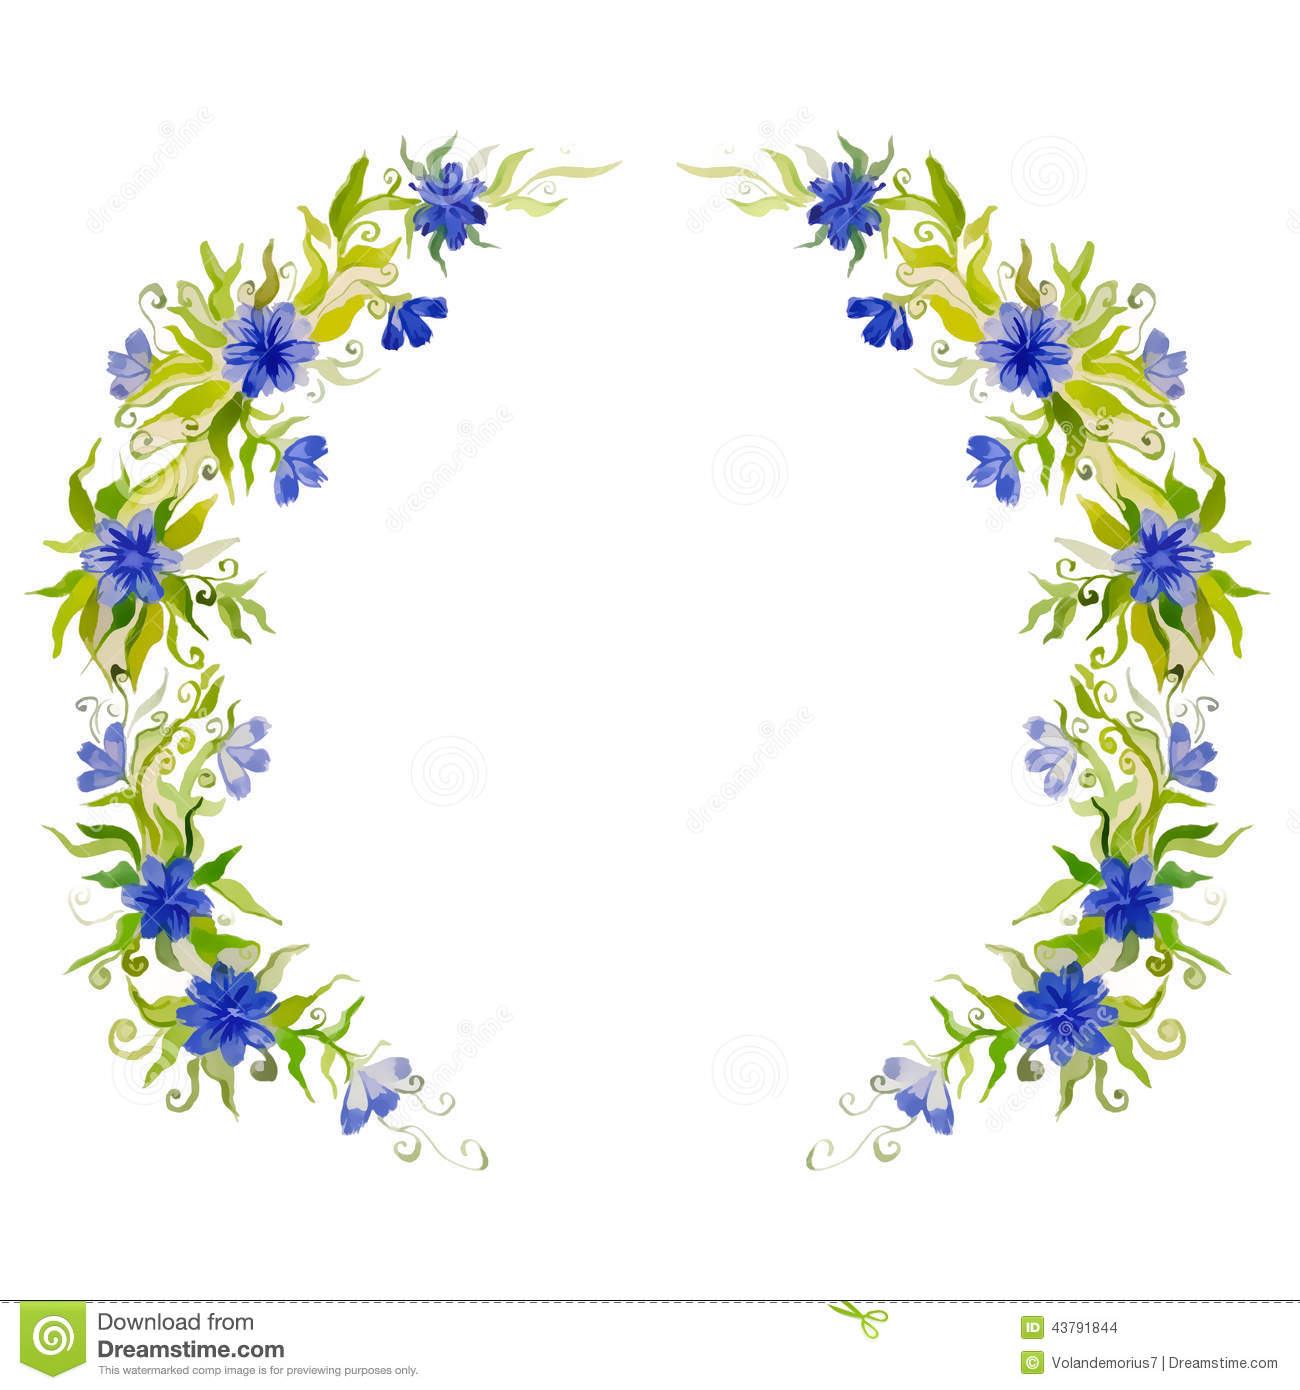 Watercolor bright beautiful flower wreath for decoration stock watercolor bright beautiful flower wreath for decoration izmirmasajfo